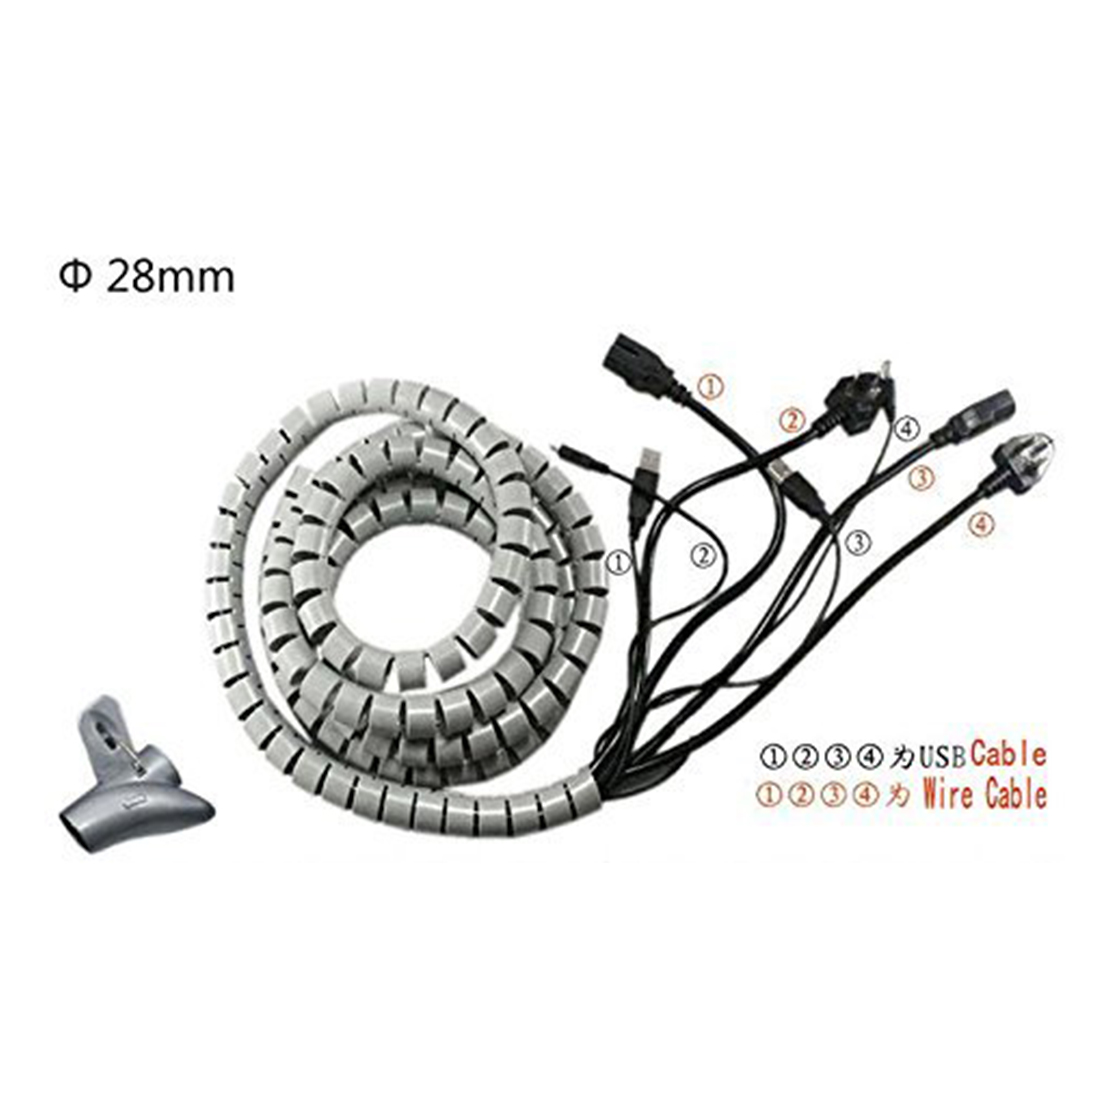 25mm Flexible Spiral Tube Cable Wire Wrap Computer Manage